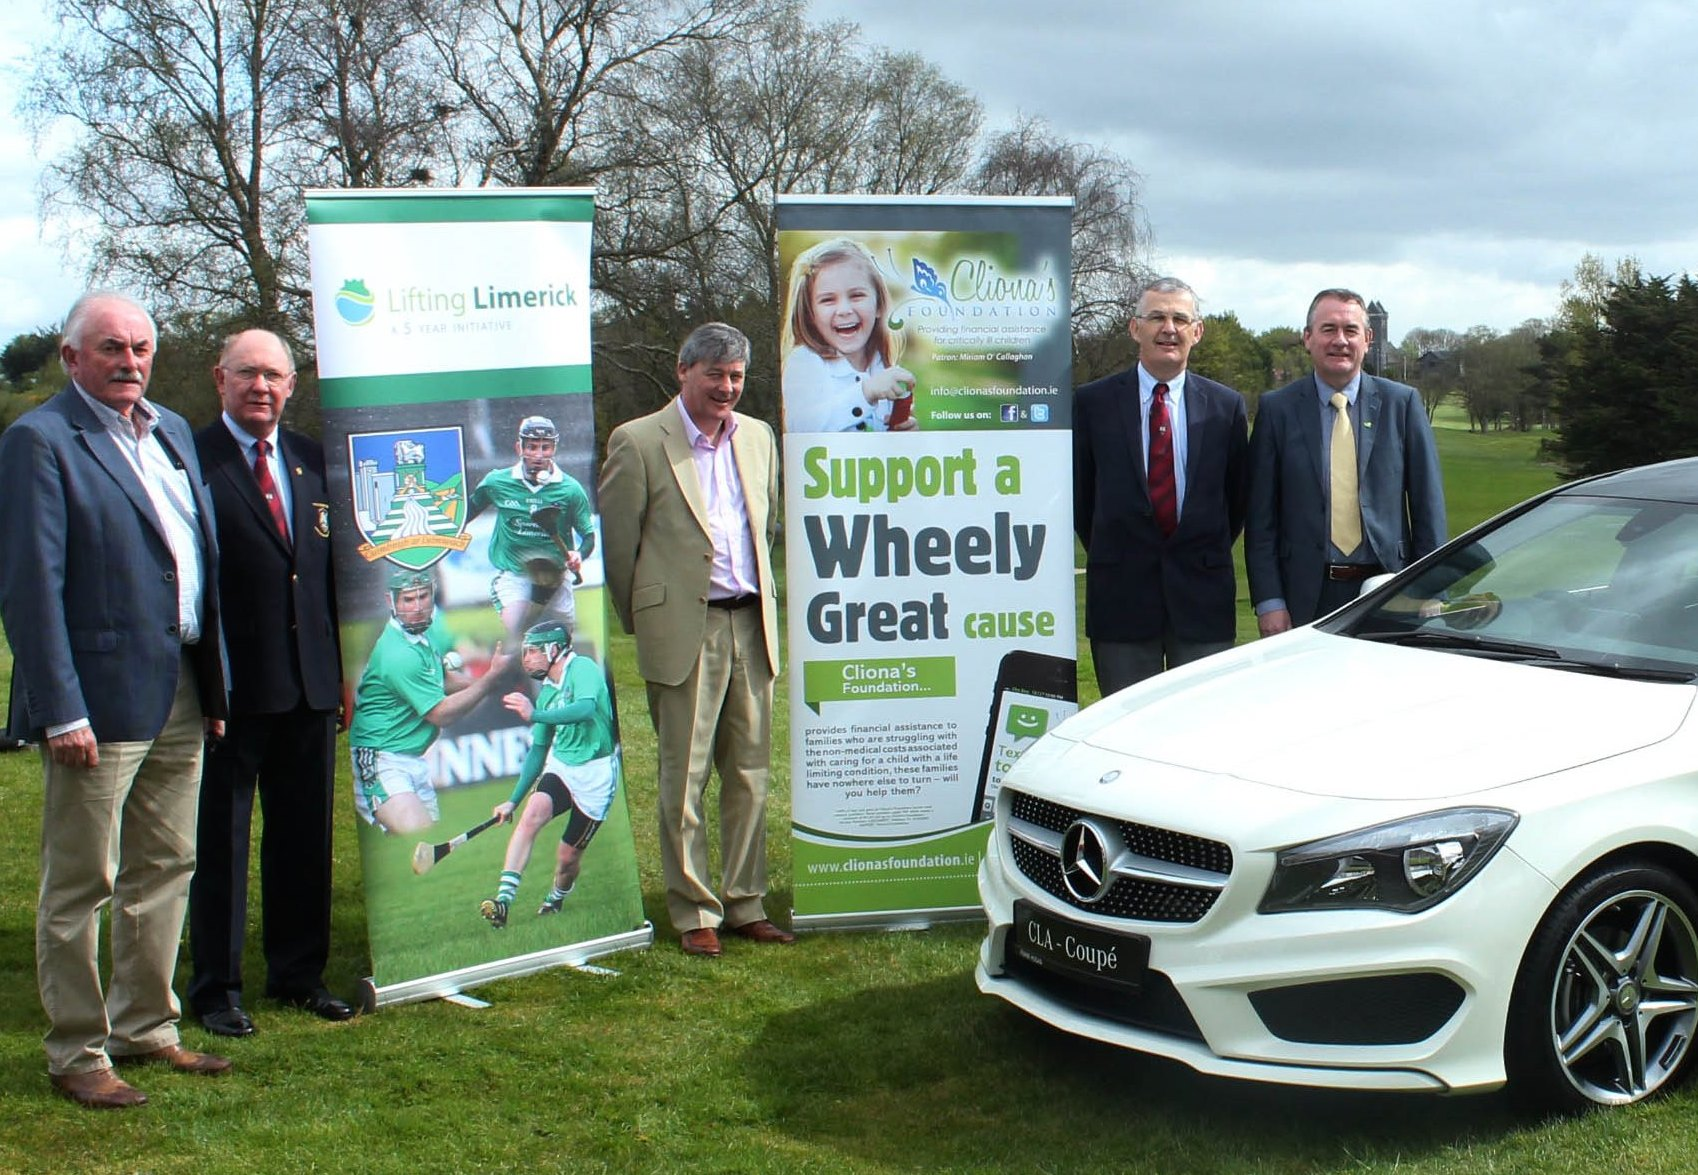 Lifting Limerick Annual Golf Event in aid of Clionas Foundation